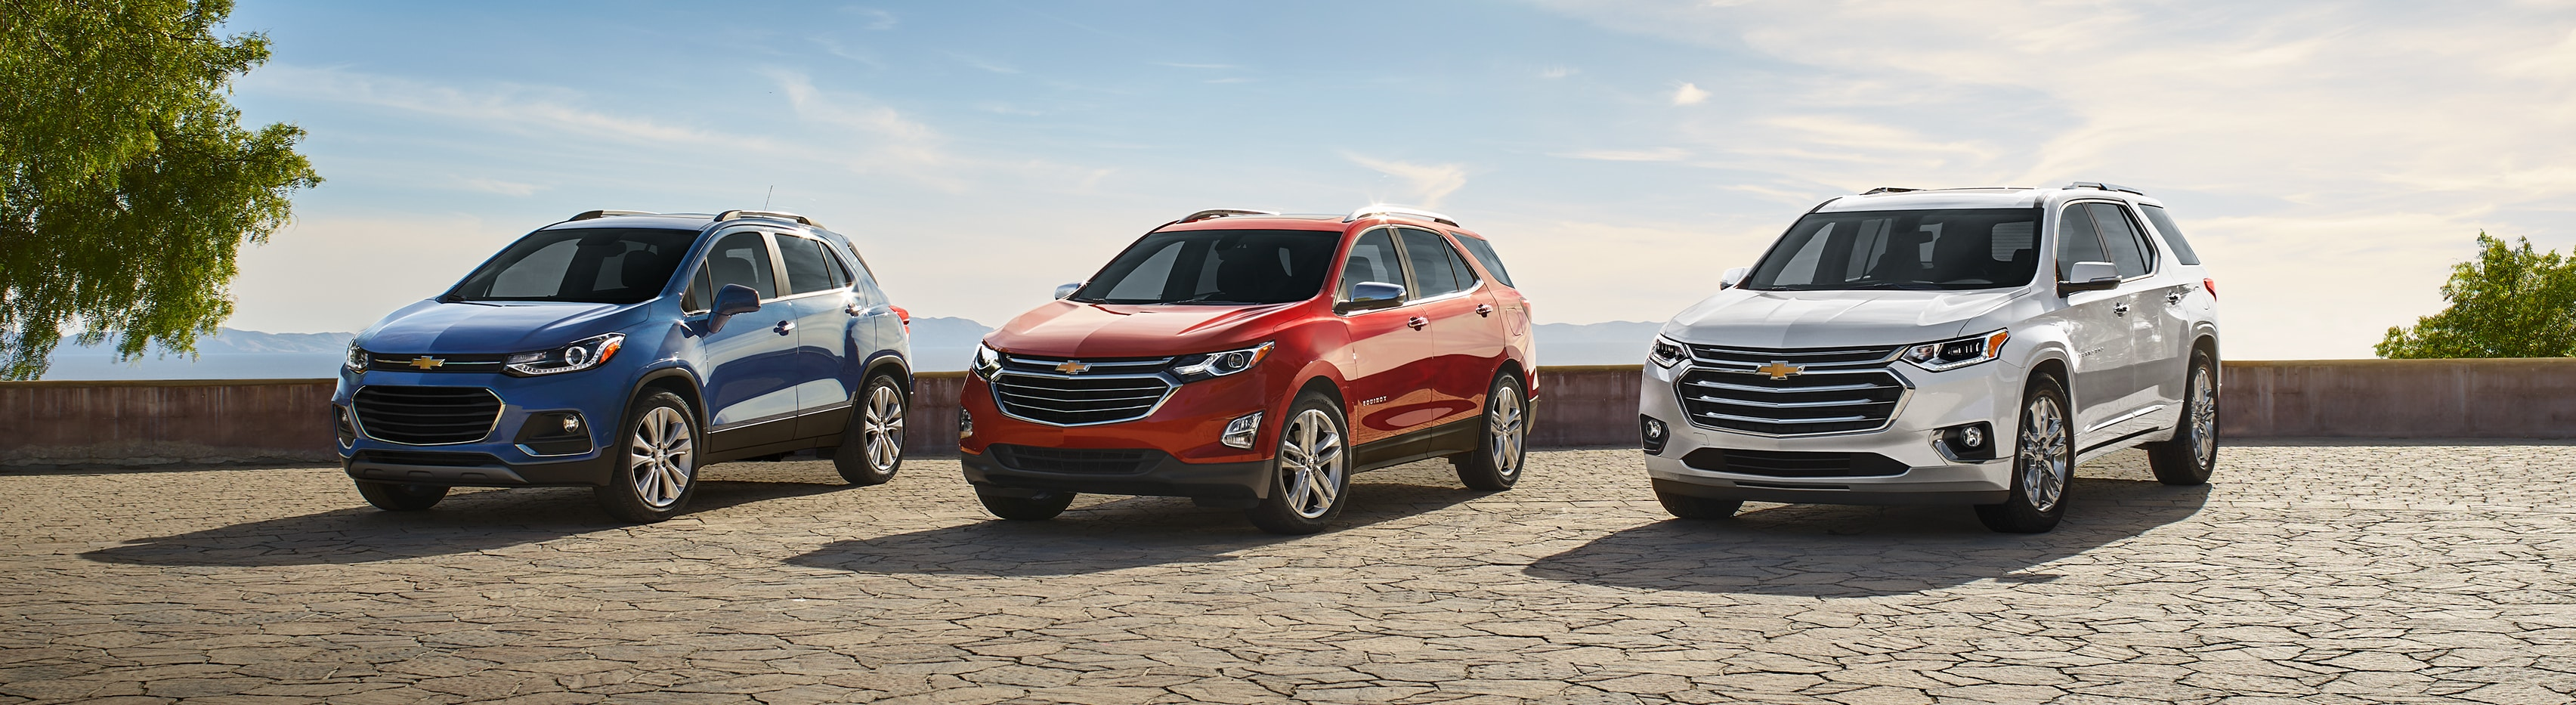 New Chevy Suv >> Research The Chevy Suv Lineup At John Megel Chevrolet